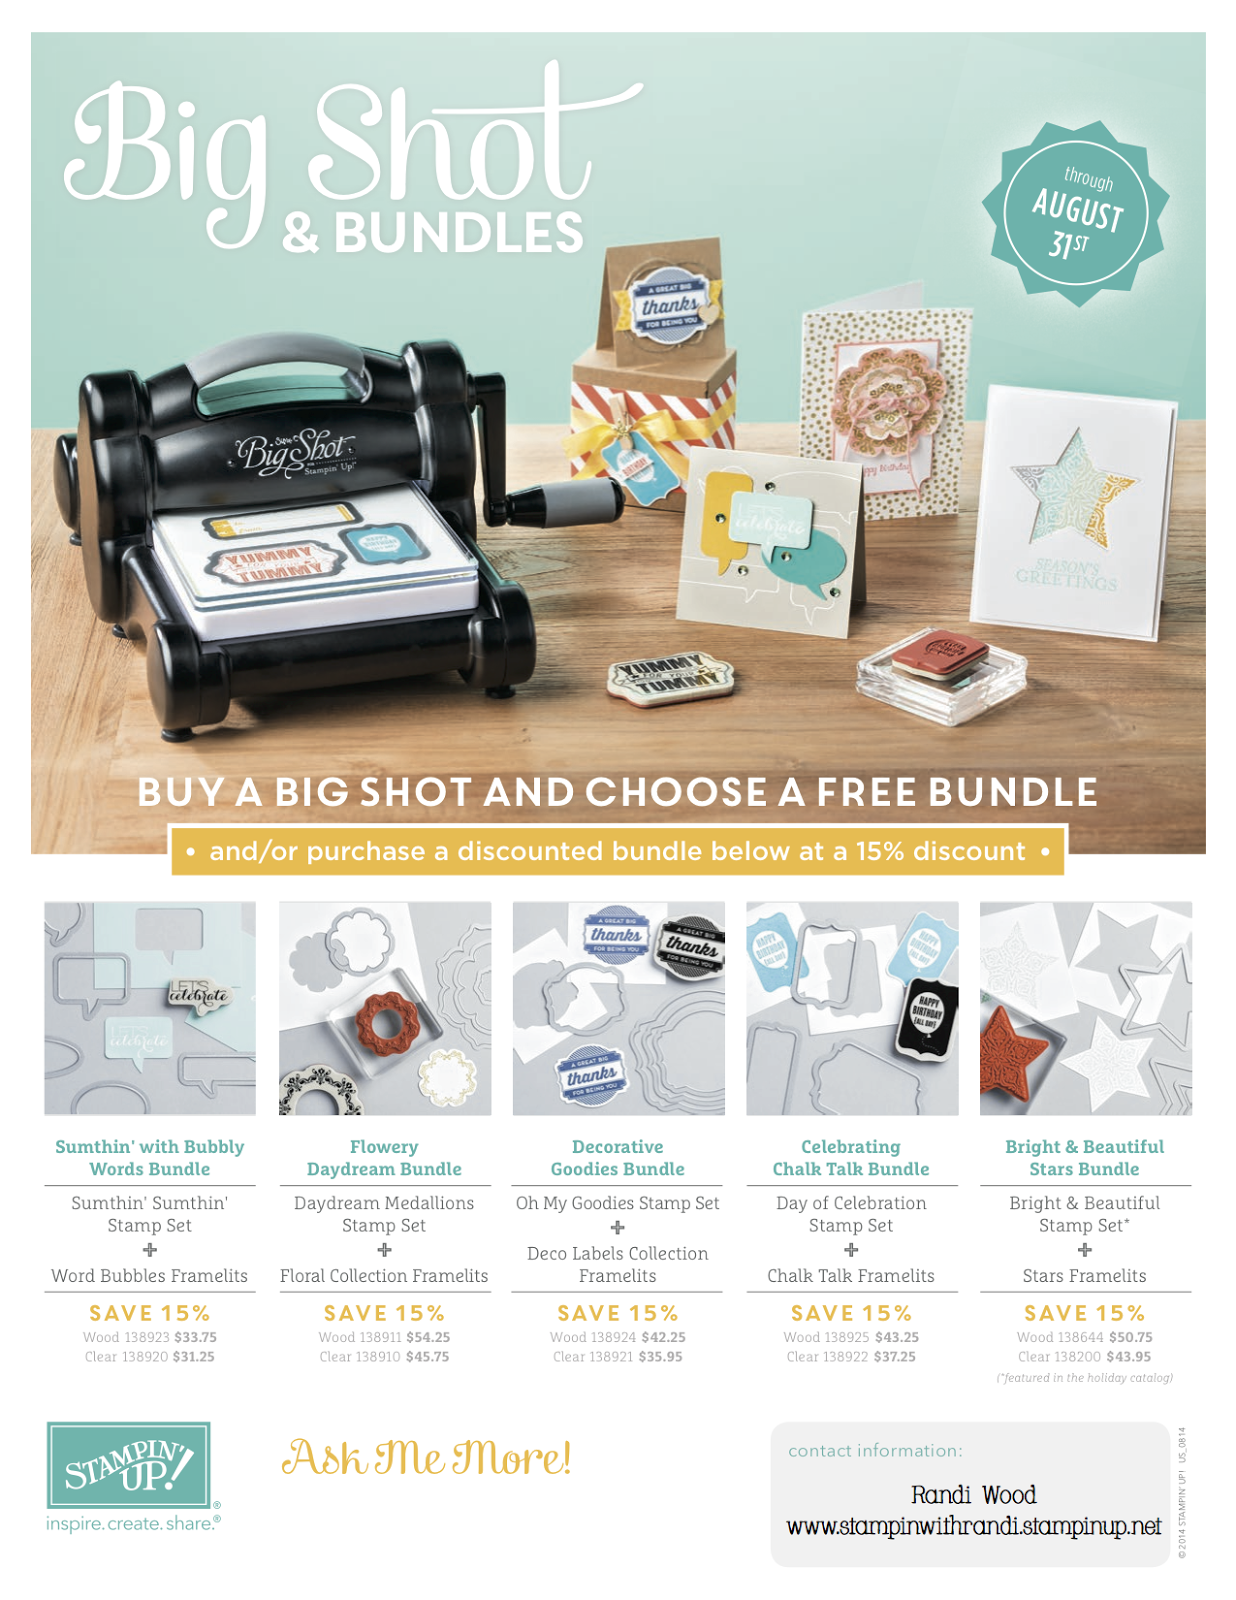 Click here to see these products in my Stampin' Store!